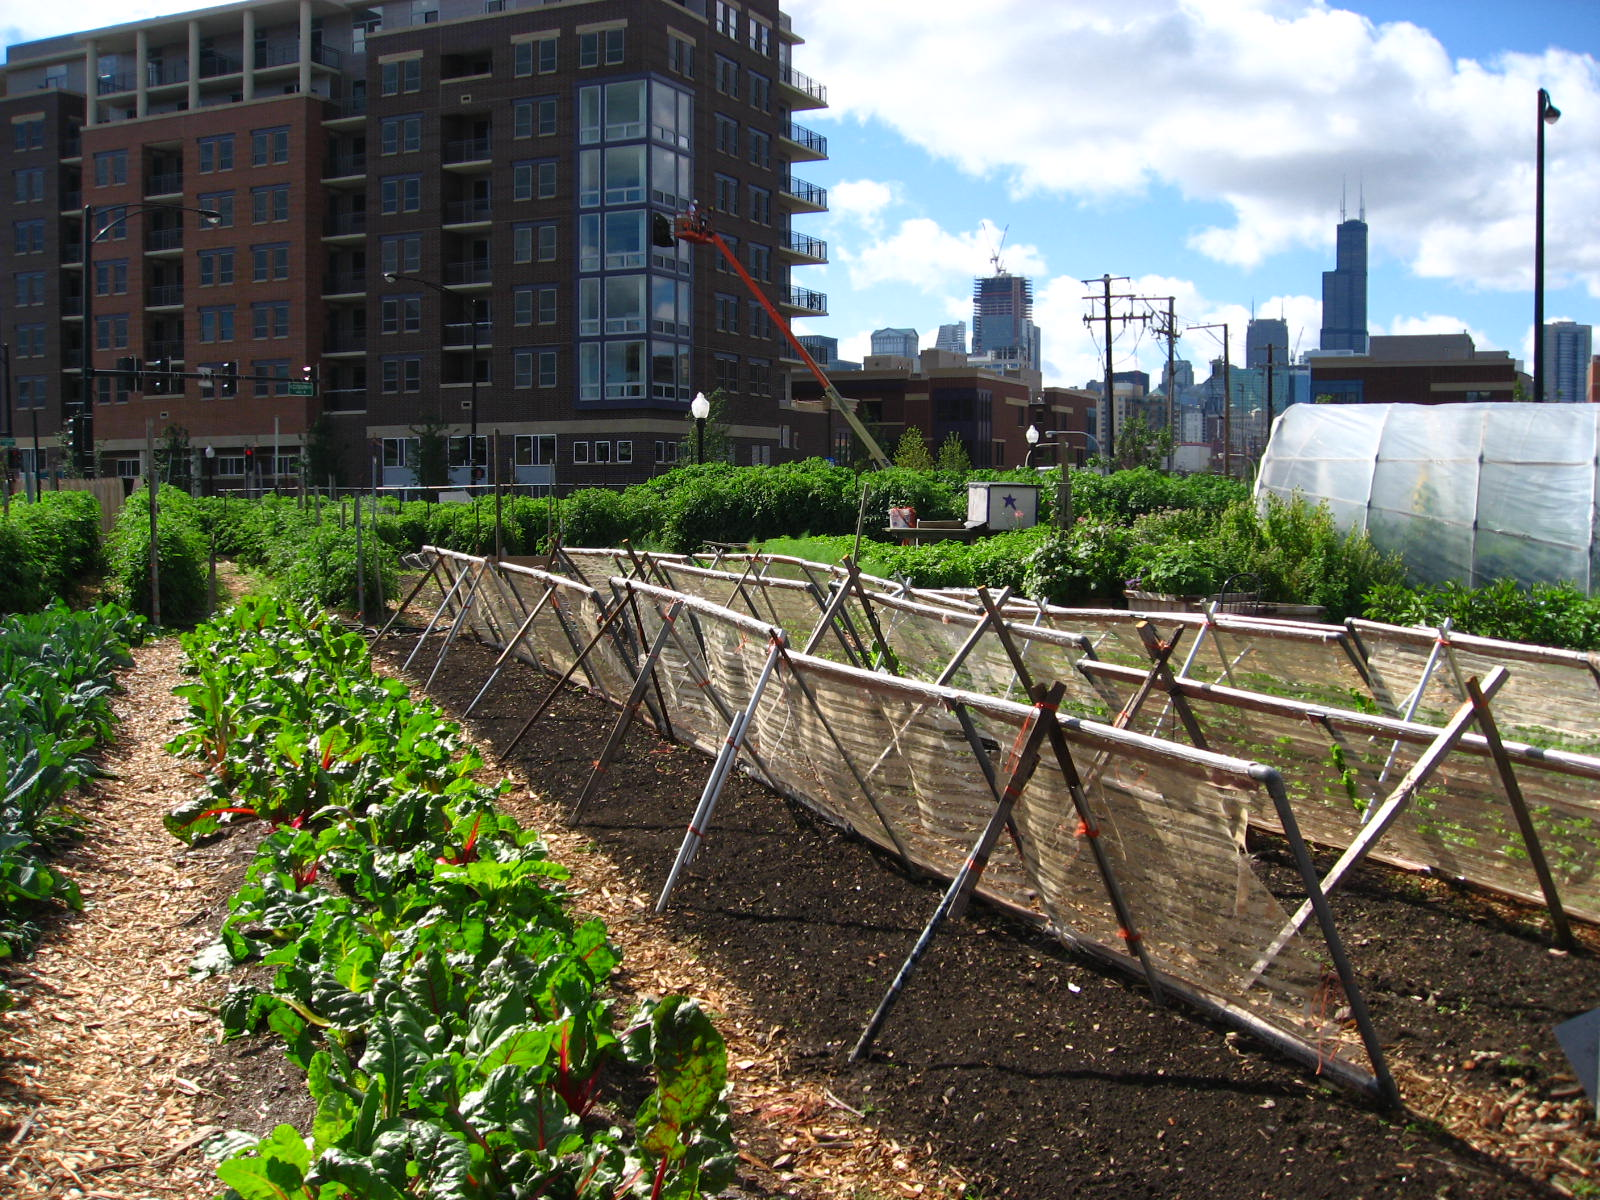 """""""Garden Cities: Theory & Practice of Agrarian Urbanism"""" by Andres Duany"""